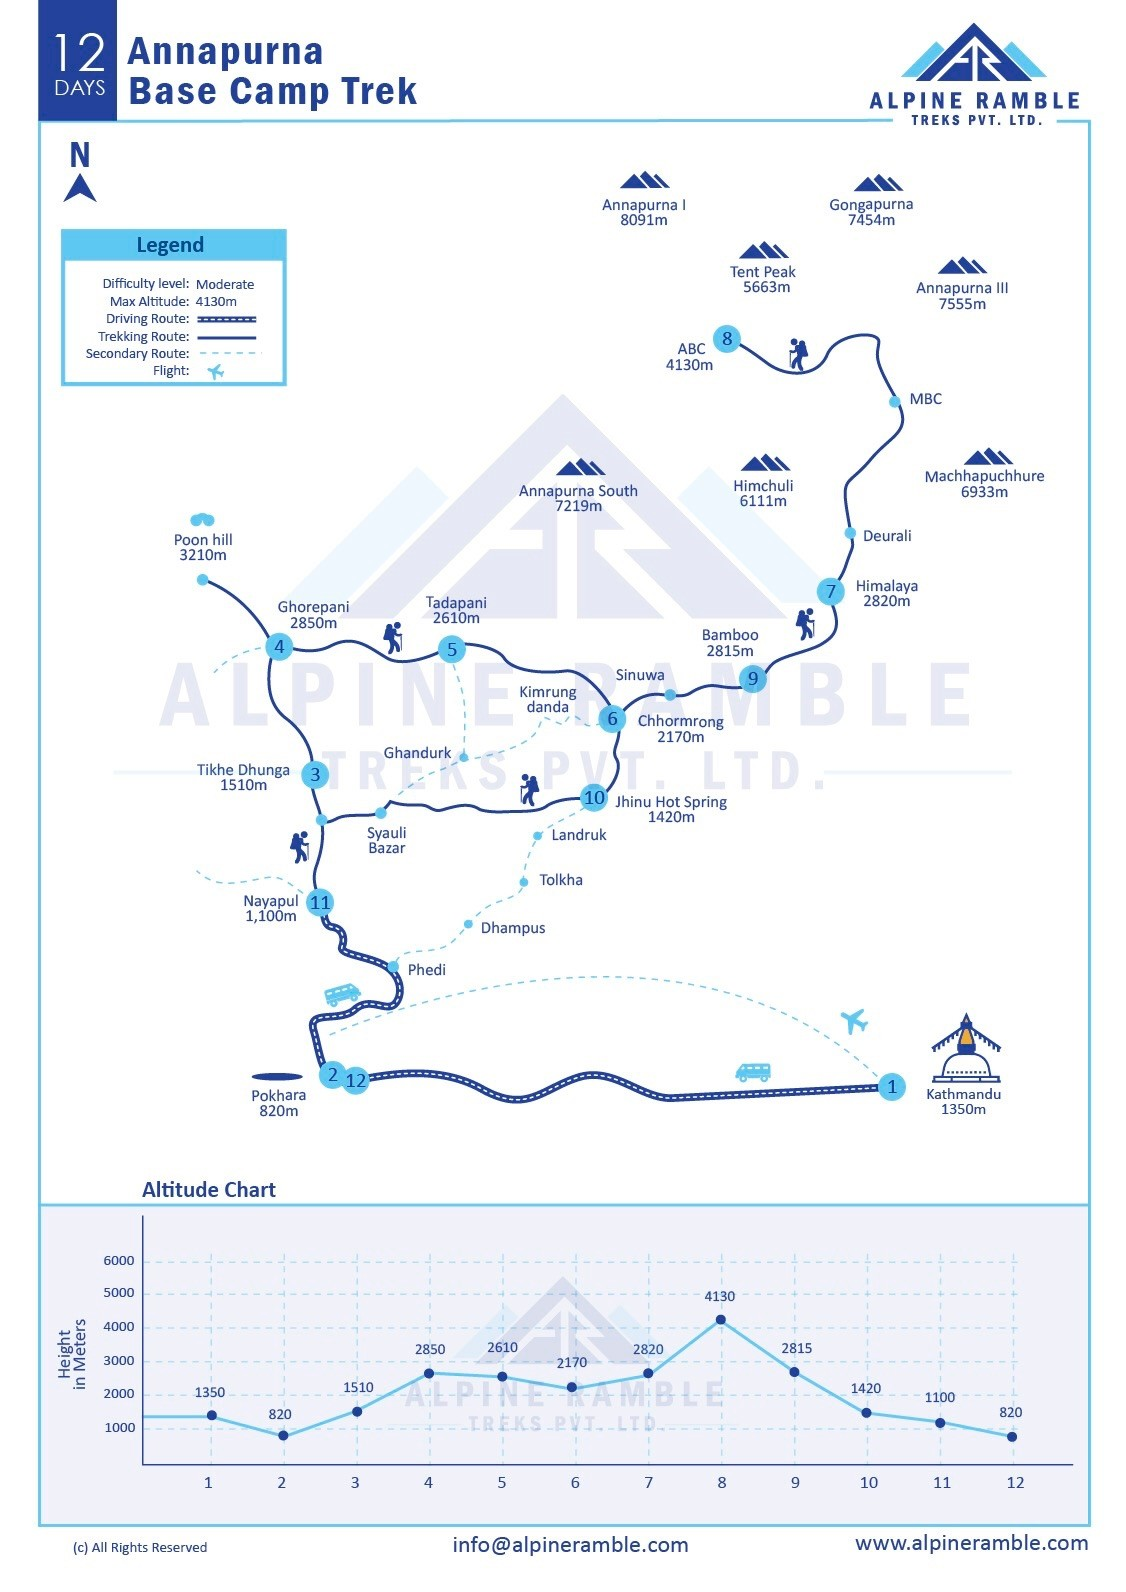 Annapurna Base Camp Trek - 12 Days map